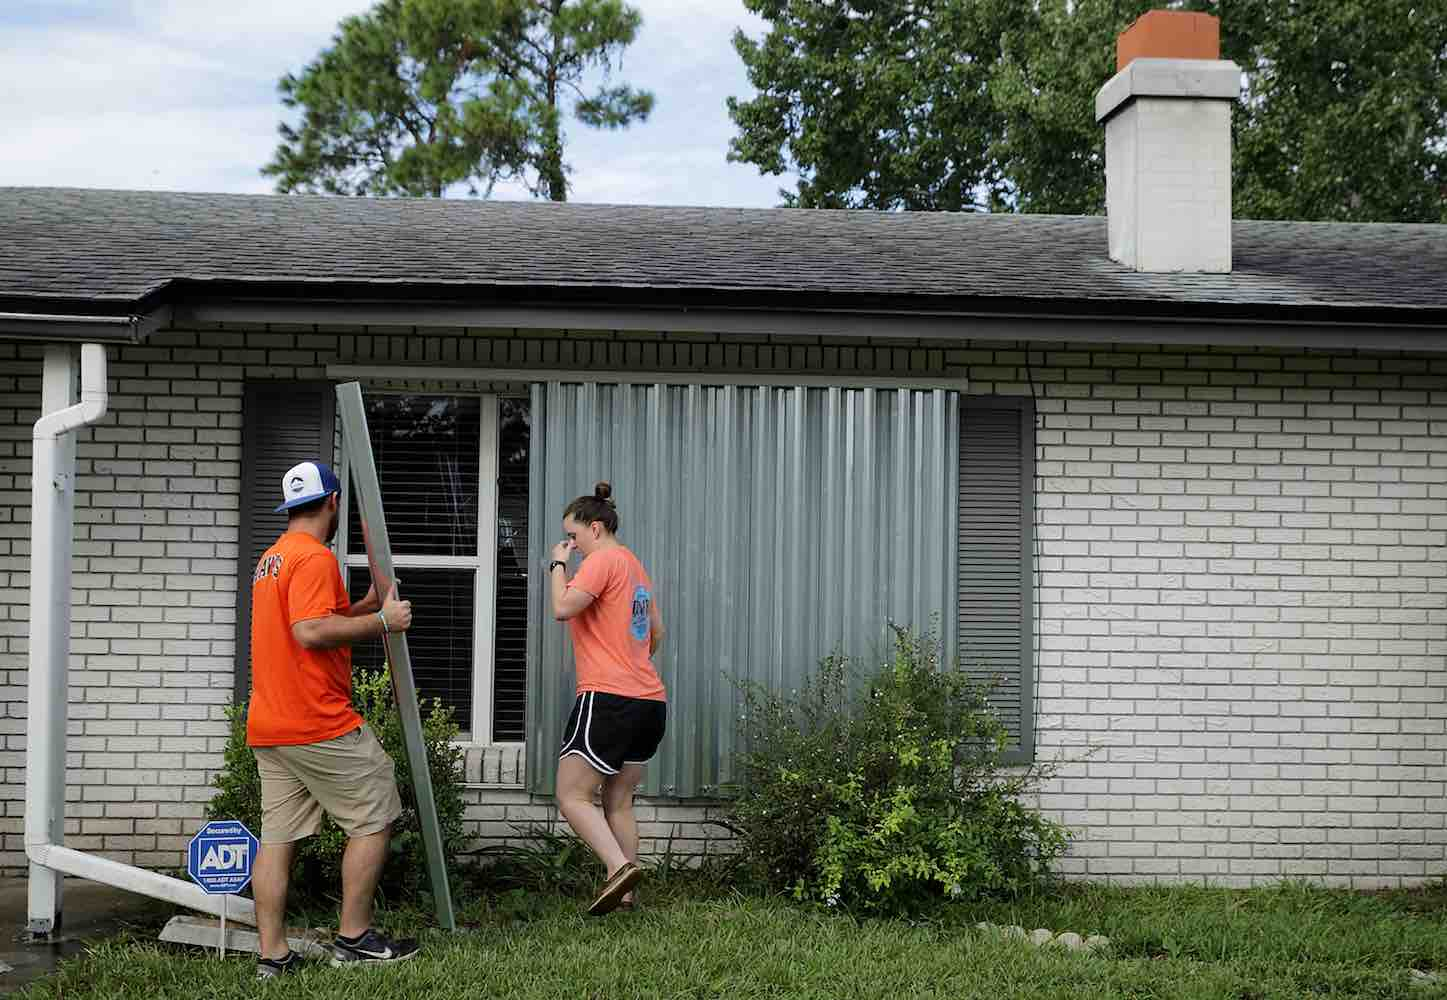 <div class='meta'><div class='origin-logo' data-origin='Creative Content'></div><span class='caption-text' data-credit='Chip Somodevilla/Getty'>Caleb Rich and his wife Rachel Rich put metal shutters over windows on their home ahead of the arrival of Hurricane Irma September 9, 2017 in Daytona Beach, Florida.</span></div>